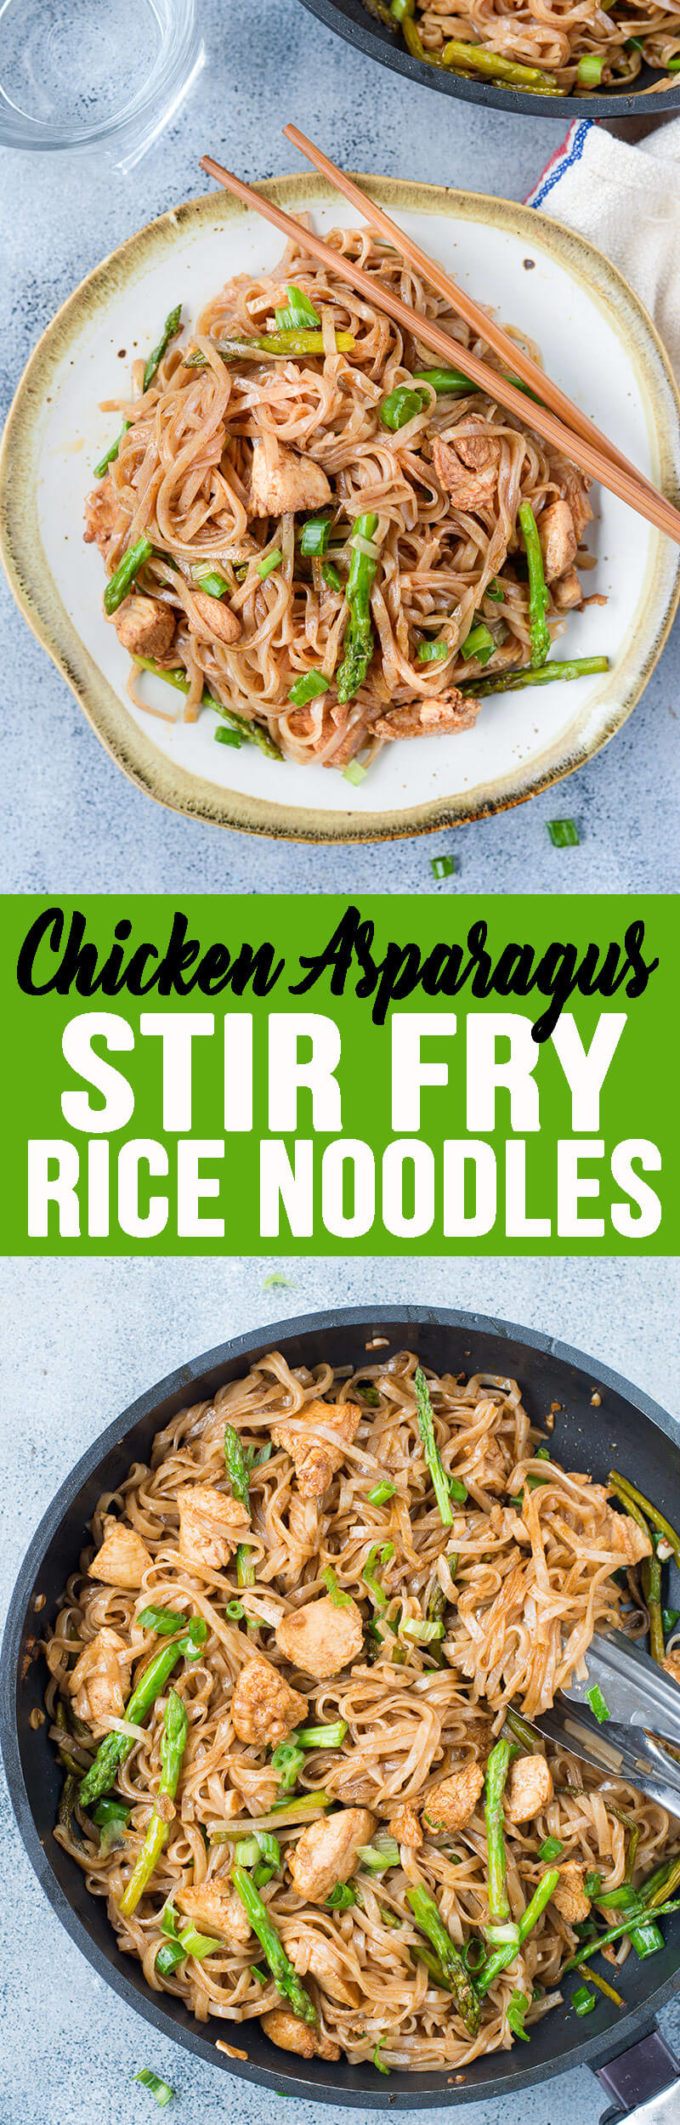 This Stir Fry Noodles is a quick stir fry recipe with bursting Asian flavors. All you will need is one pan and less than 30 minutes to make a delicious weeknight dinner. While Chicken and asparagus works as a wonderful combination, you add any vegetable of your choice.